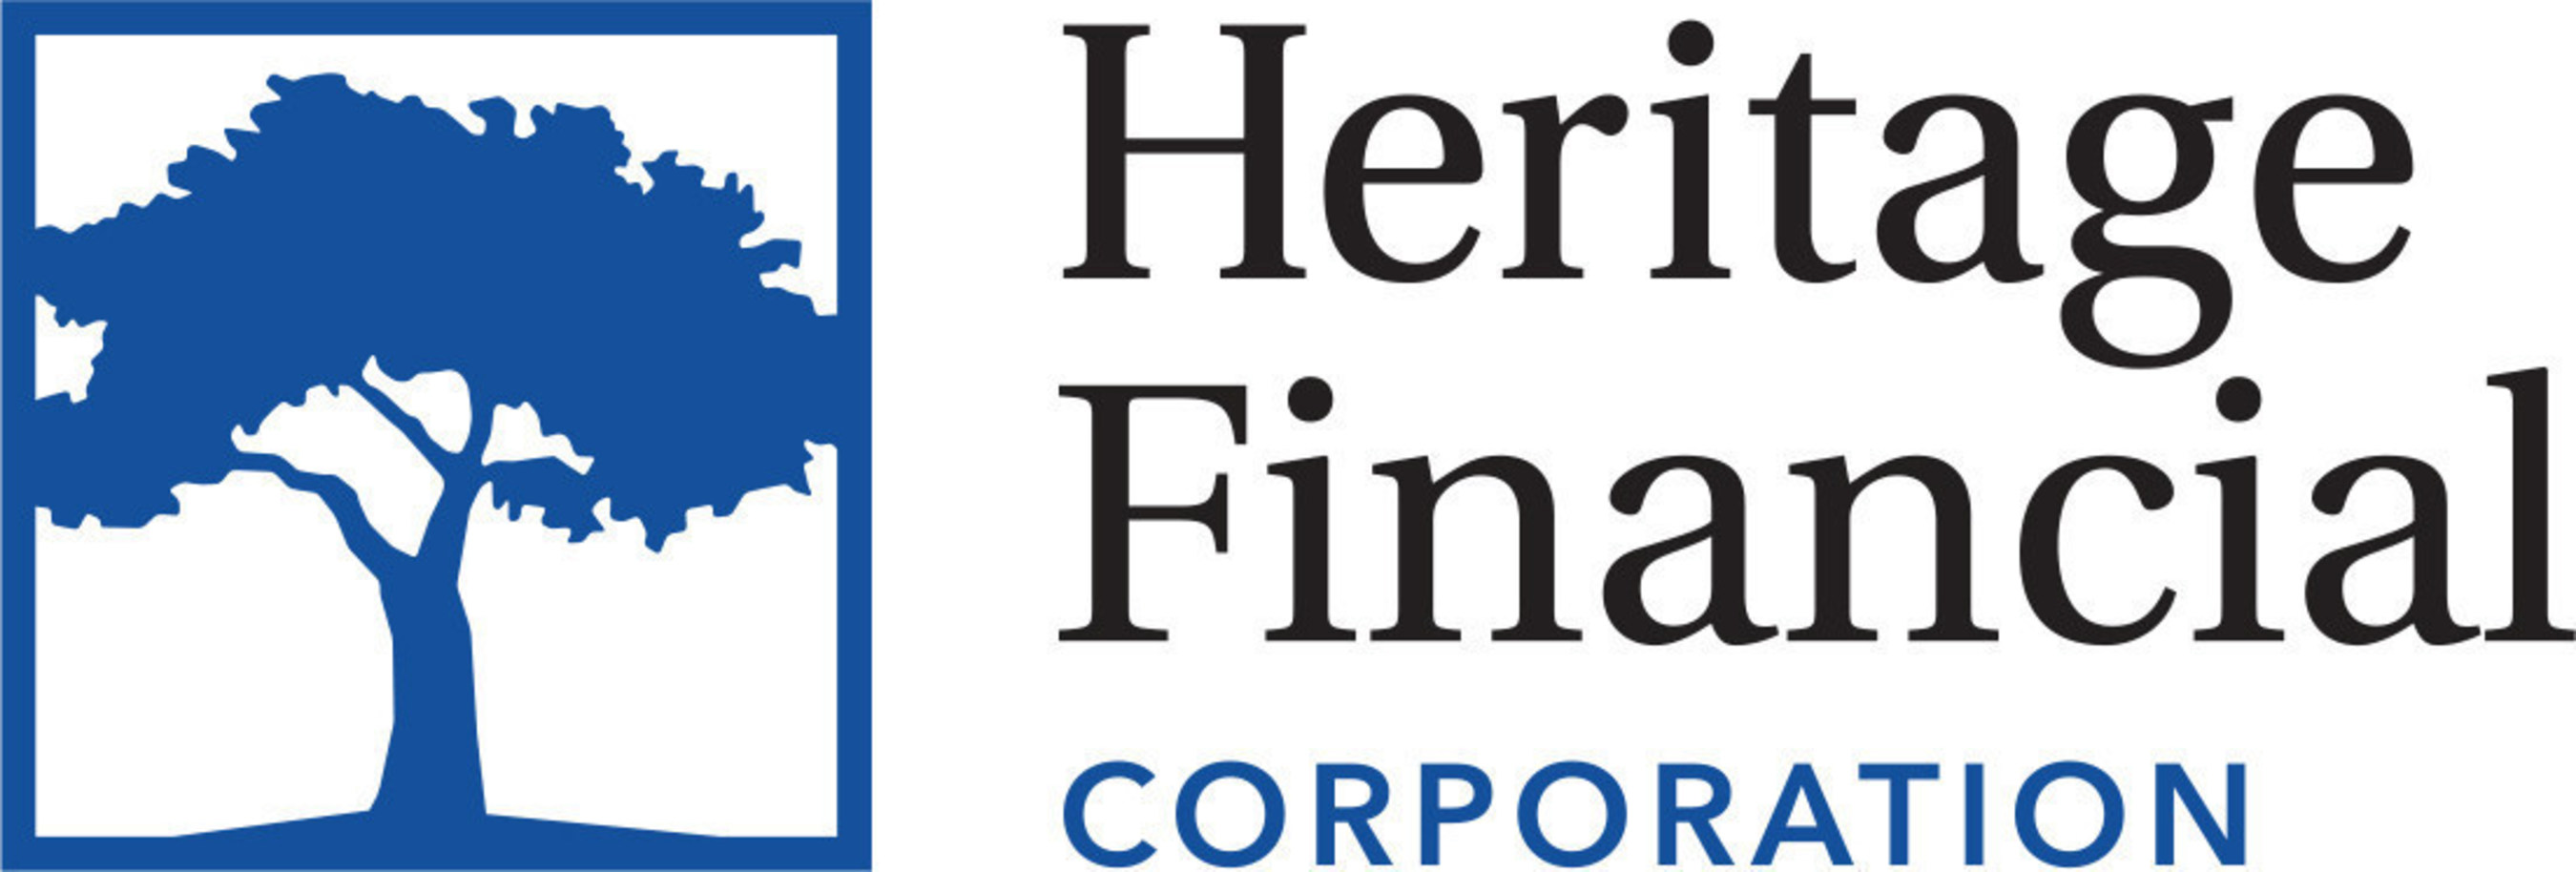 Heritage Financial Announces Fourth Quarter And Annual 2015 Results And Declares Regular Cash